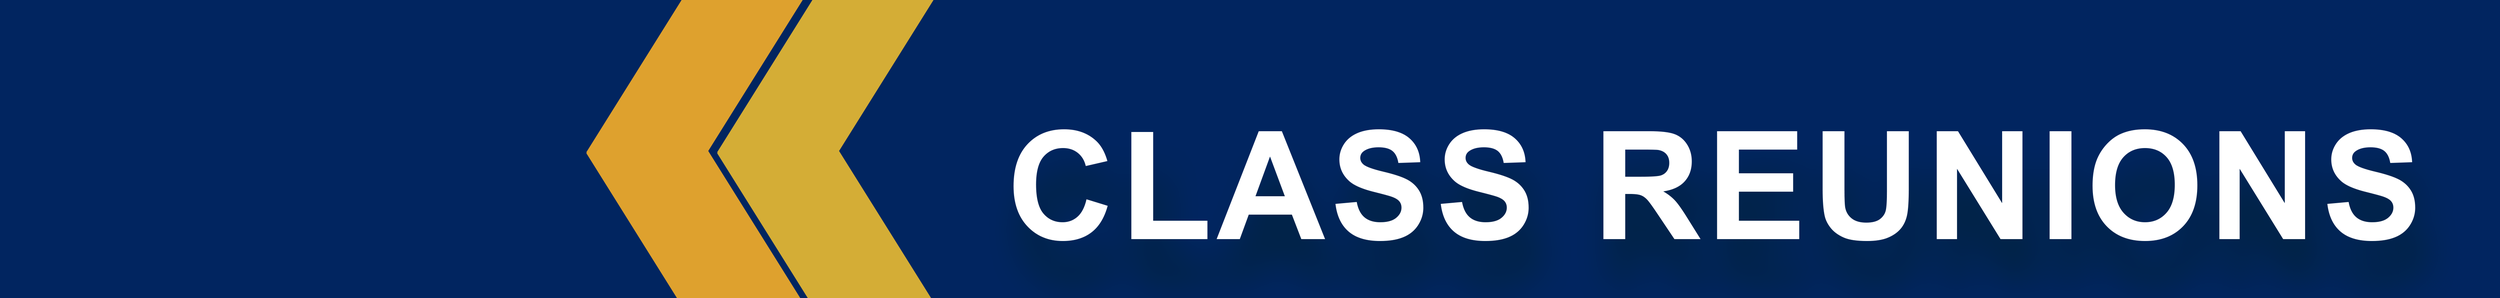 Class Reunion page banner.